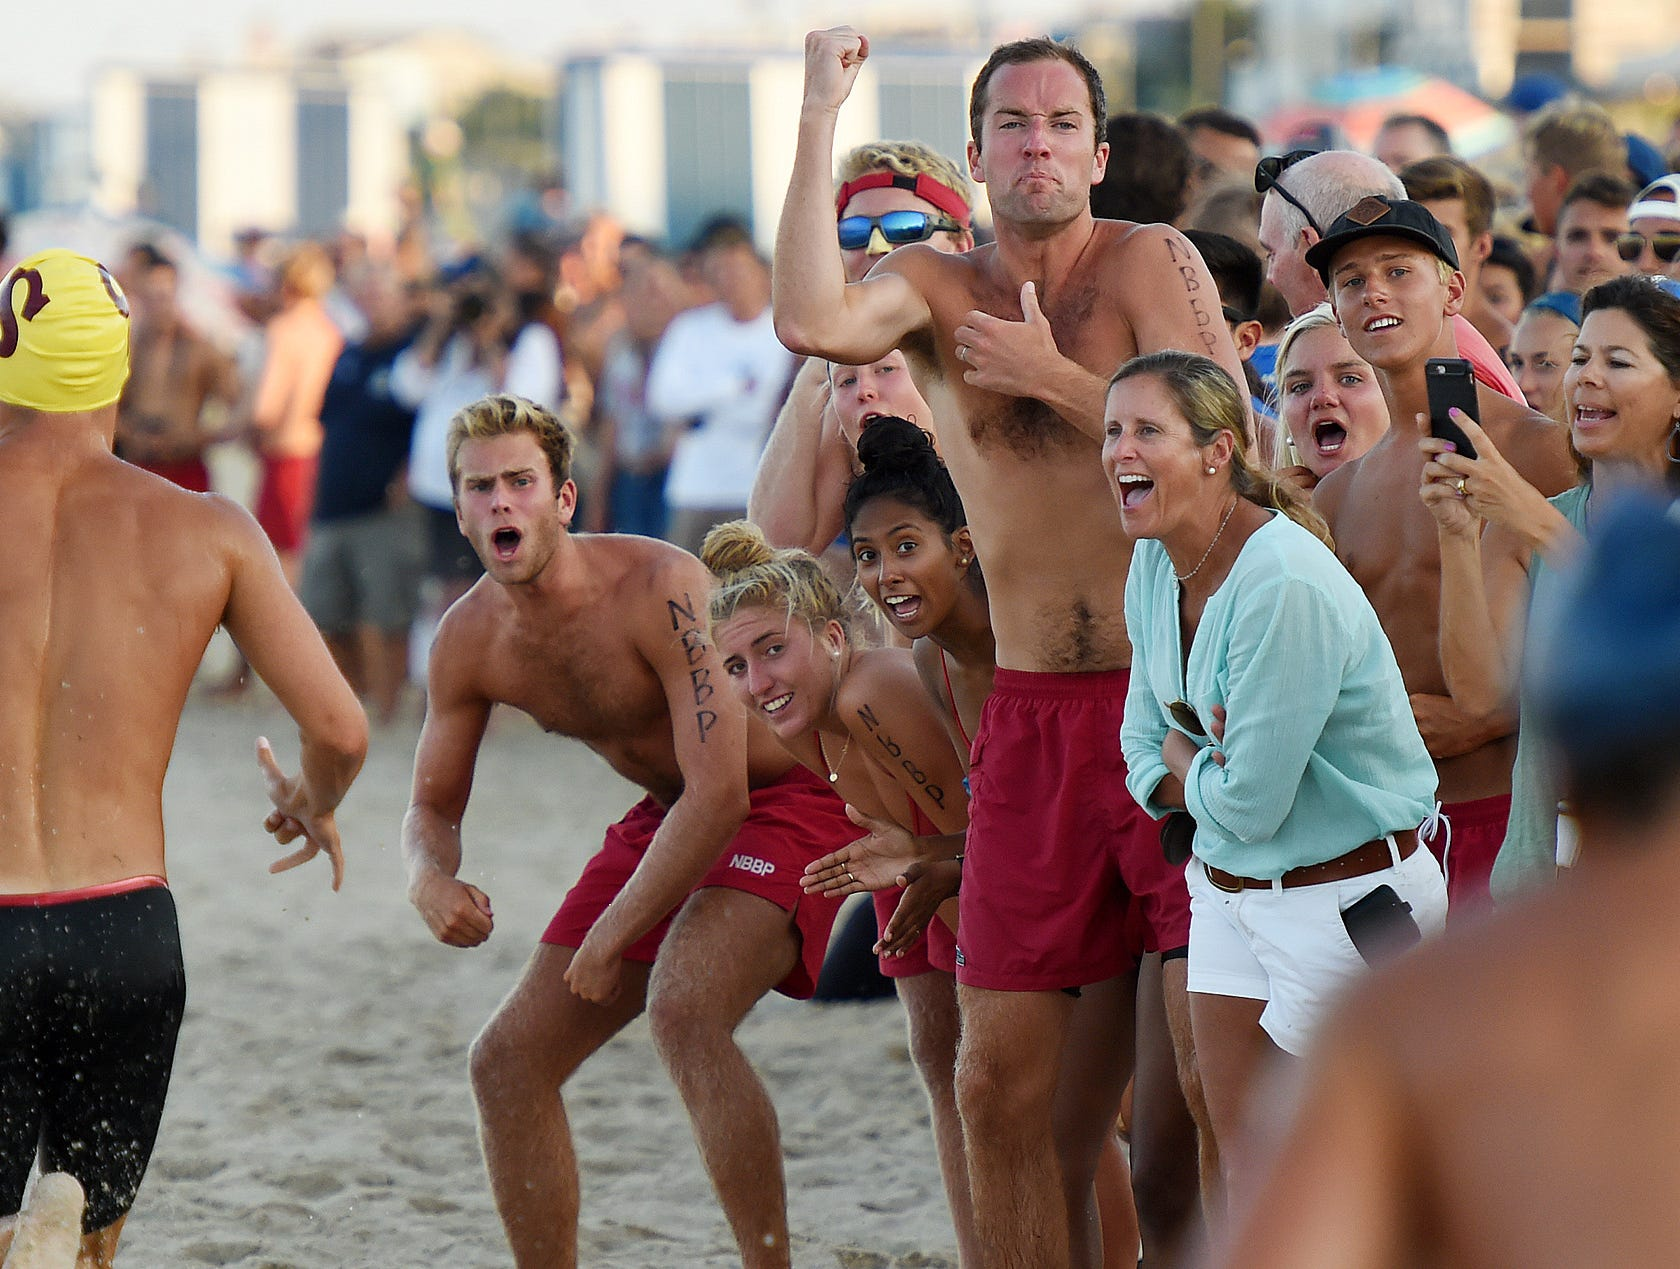 Lifeguards from Rehoboth Beach, Bethany Beach, Dewey Beach, Delaware State Parks, North and South Bethany, Fenwick Island, Sea Colony, Middlesex and Ocean City, Maryland compete in the annual Lifeguard Olympics at Rehoboth Beach on Thursday, July 26.